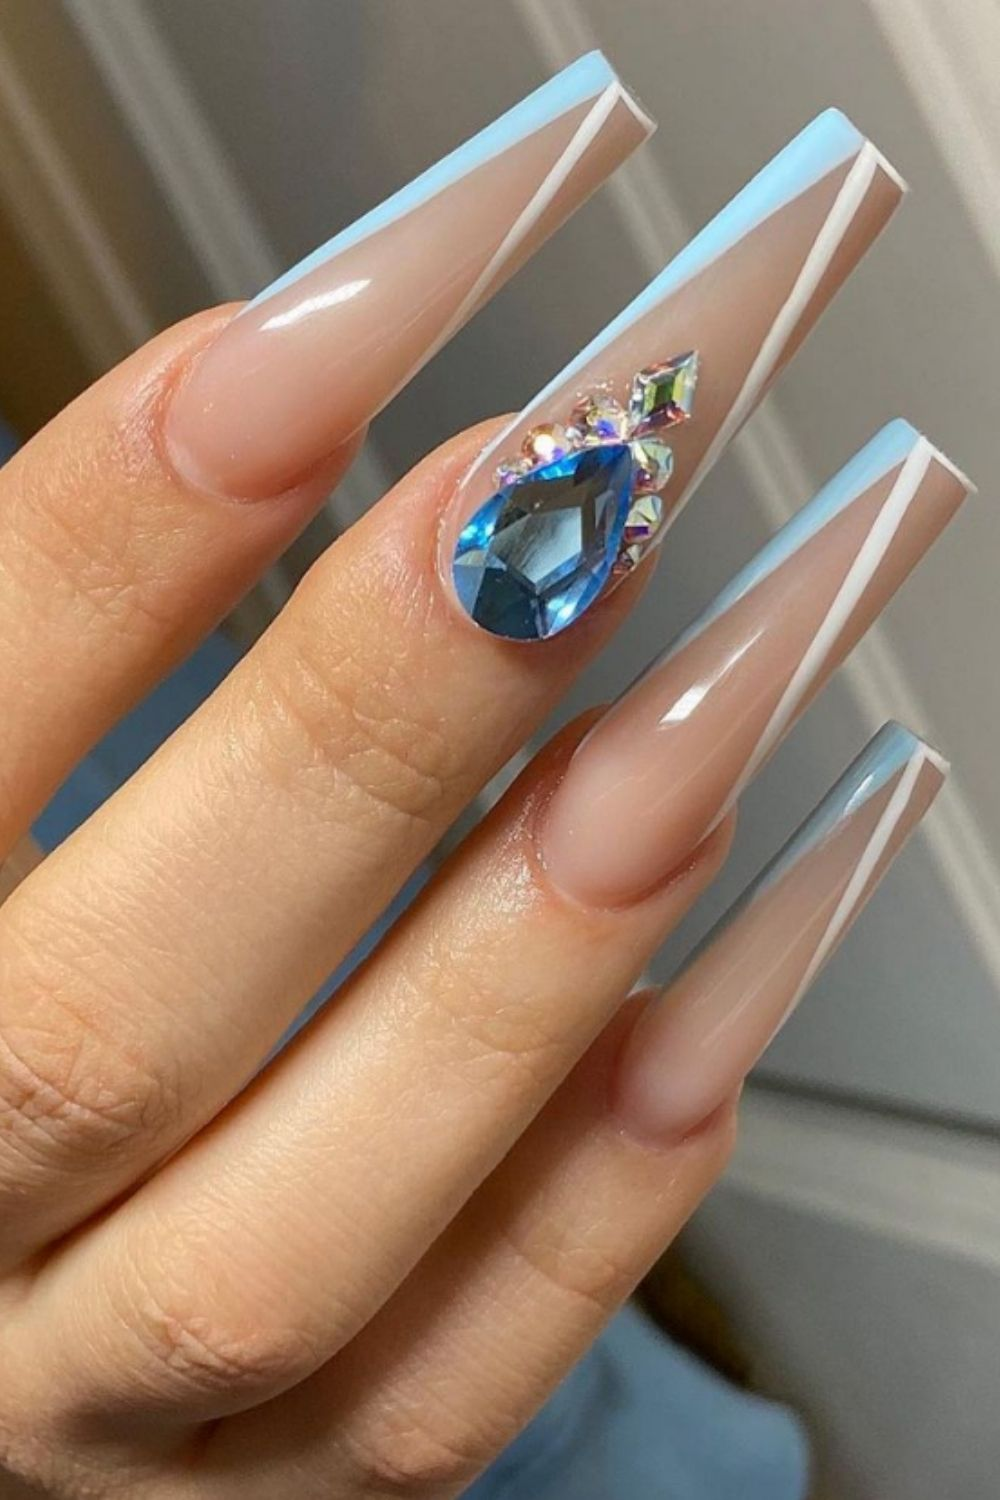 Coffin nail design makes your summer graduation prom more meaningful.